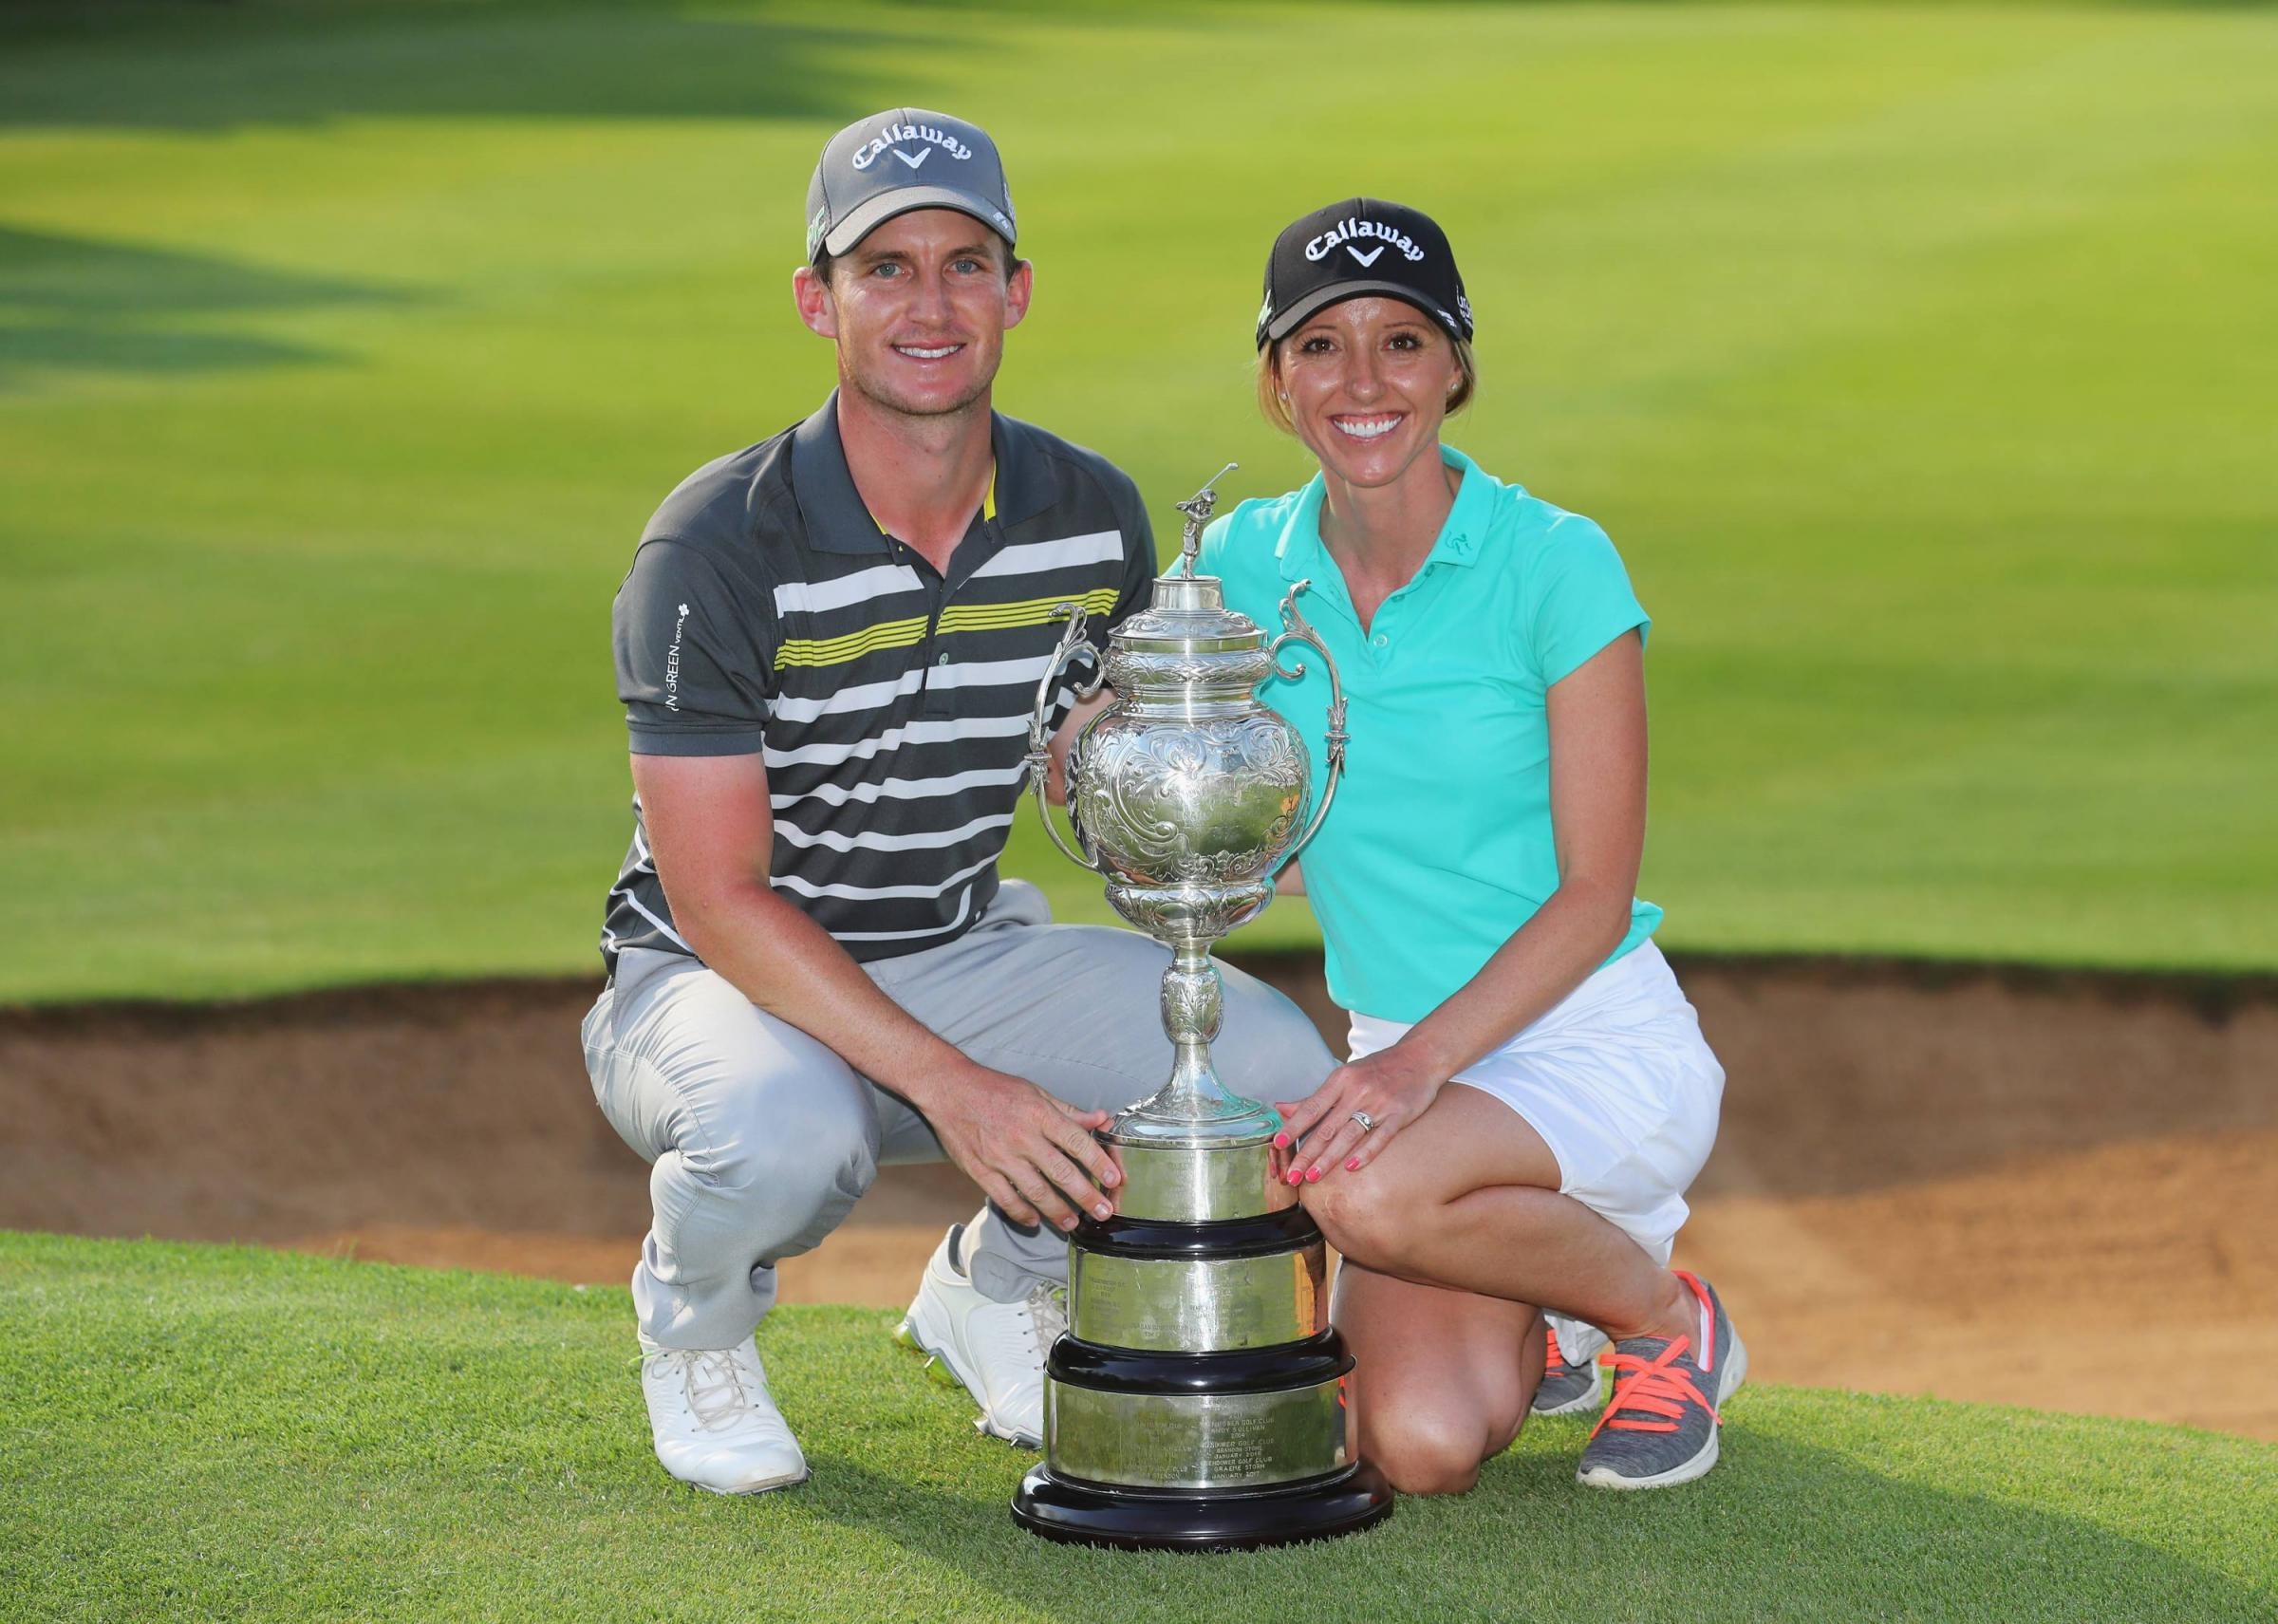 Stocksfield golfer Chris Paisley with his wife Keri after he won the BMW South African Open in January 2018.